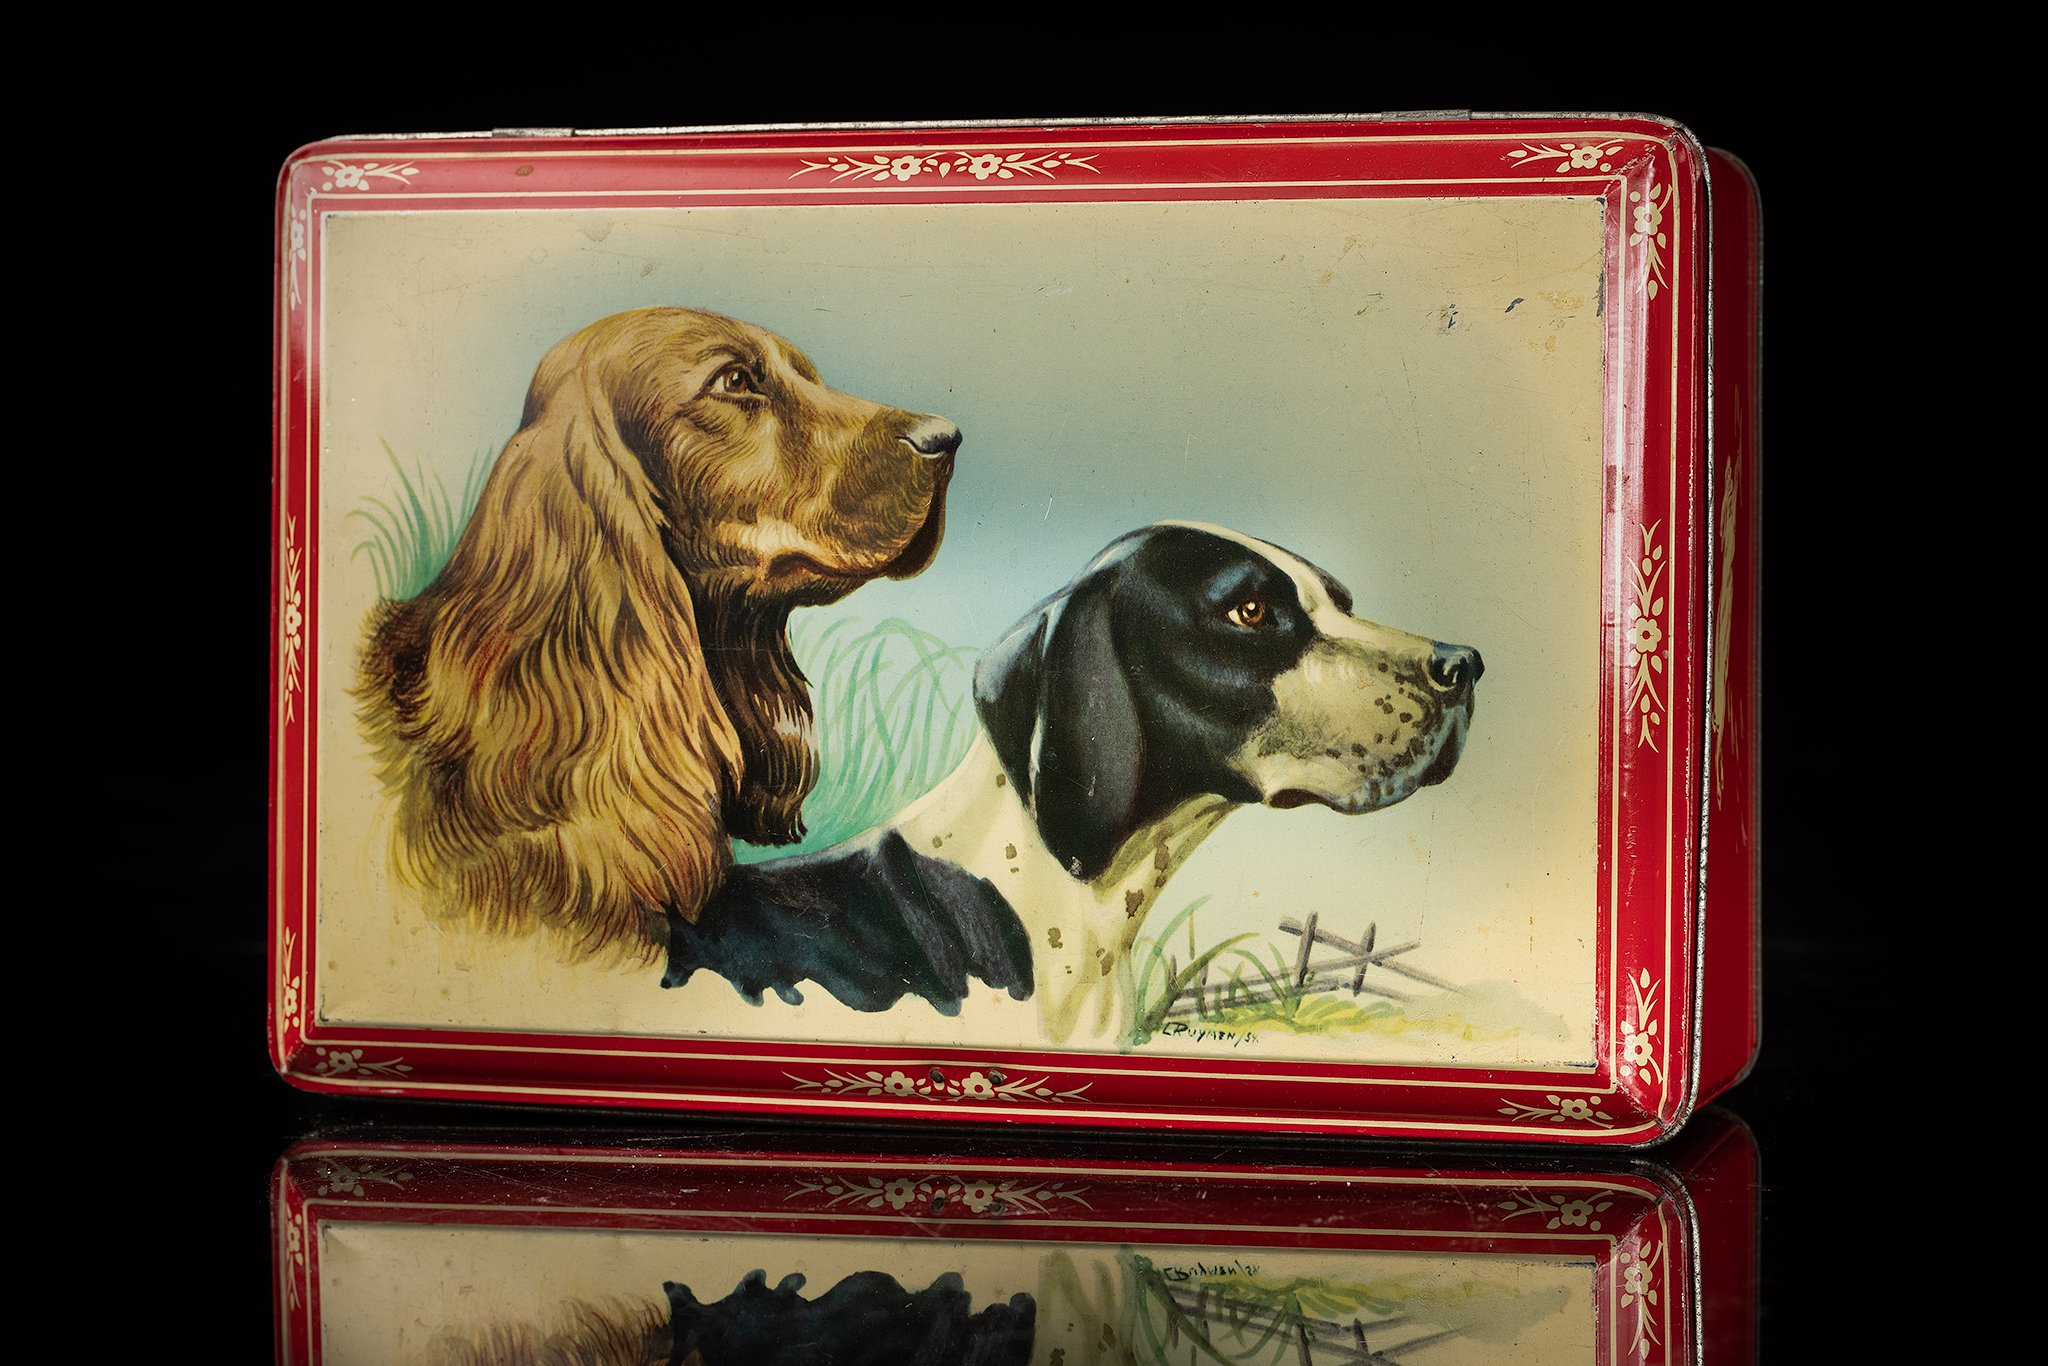 Vintage-tin-dog-box-jachth